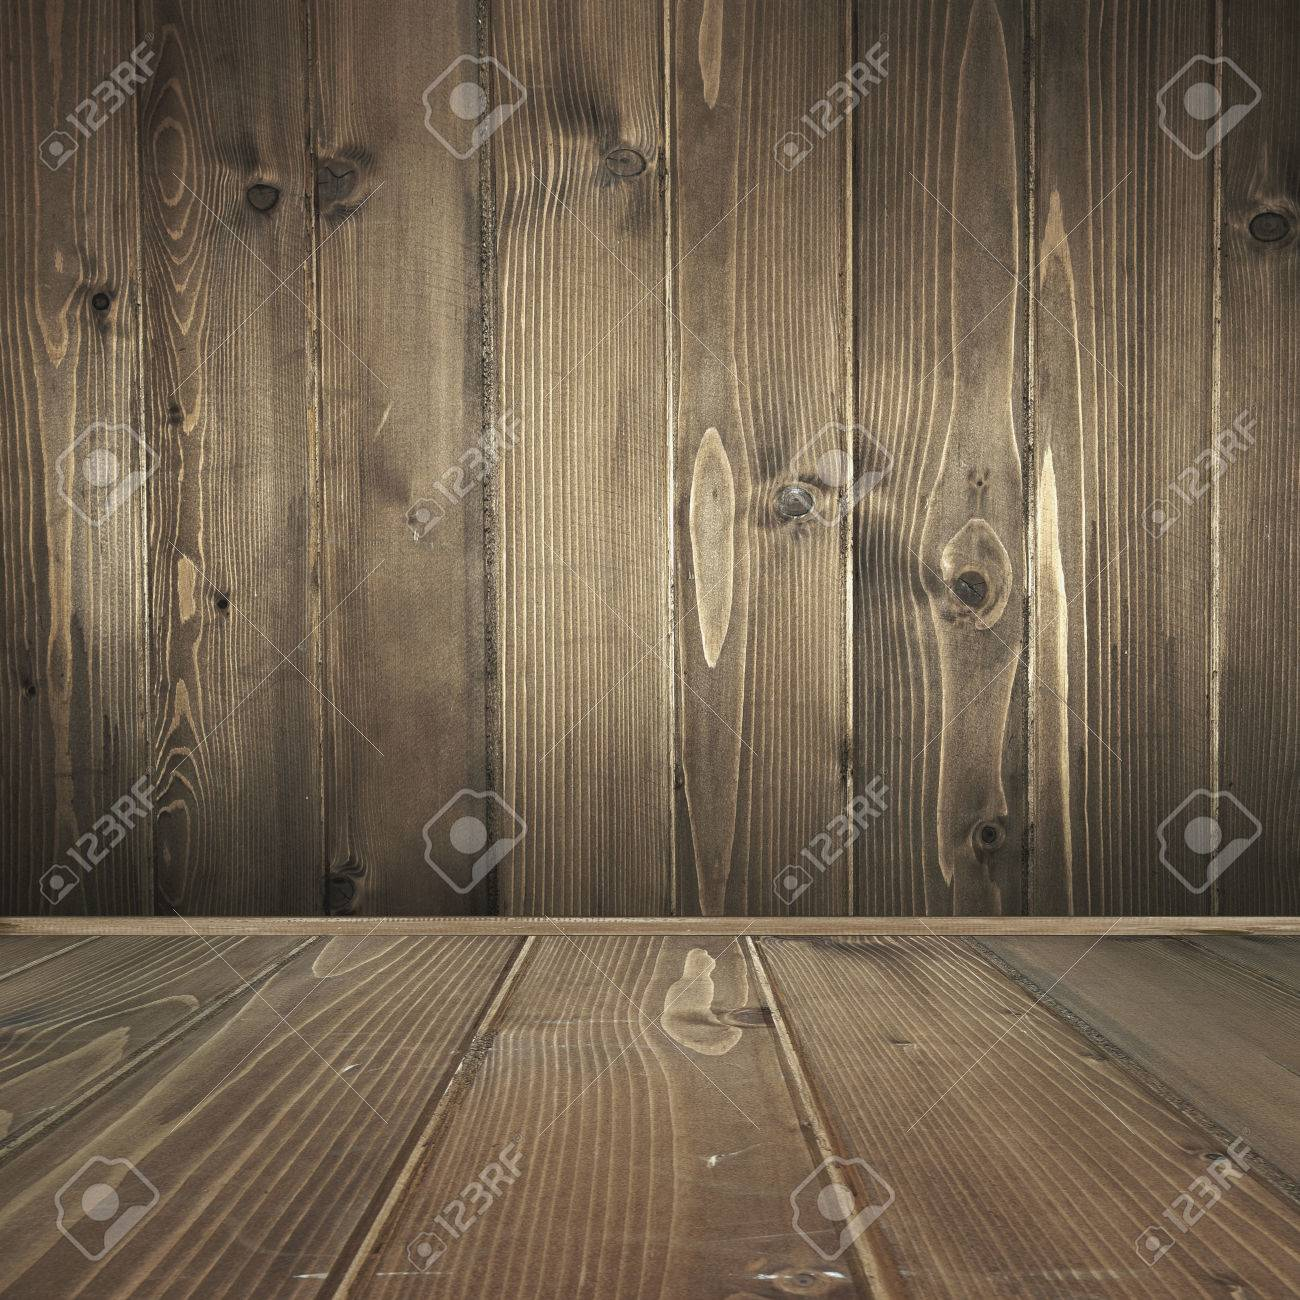 Barn Wood Texture old wood texture wall and floor in brown color, barn wood interior